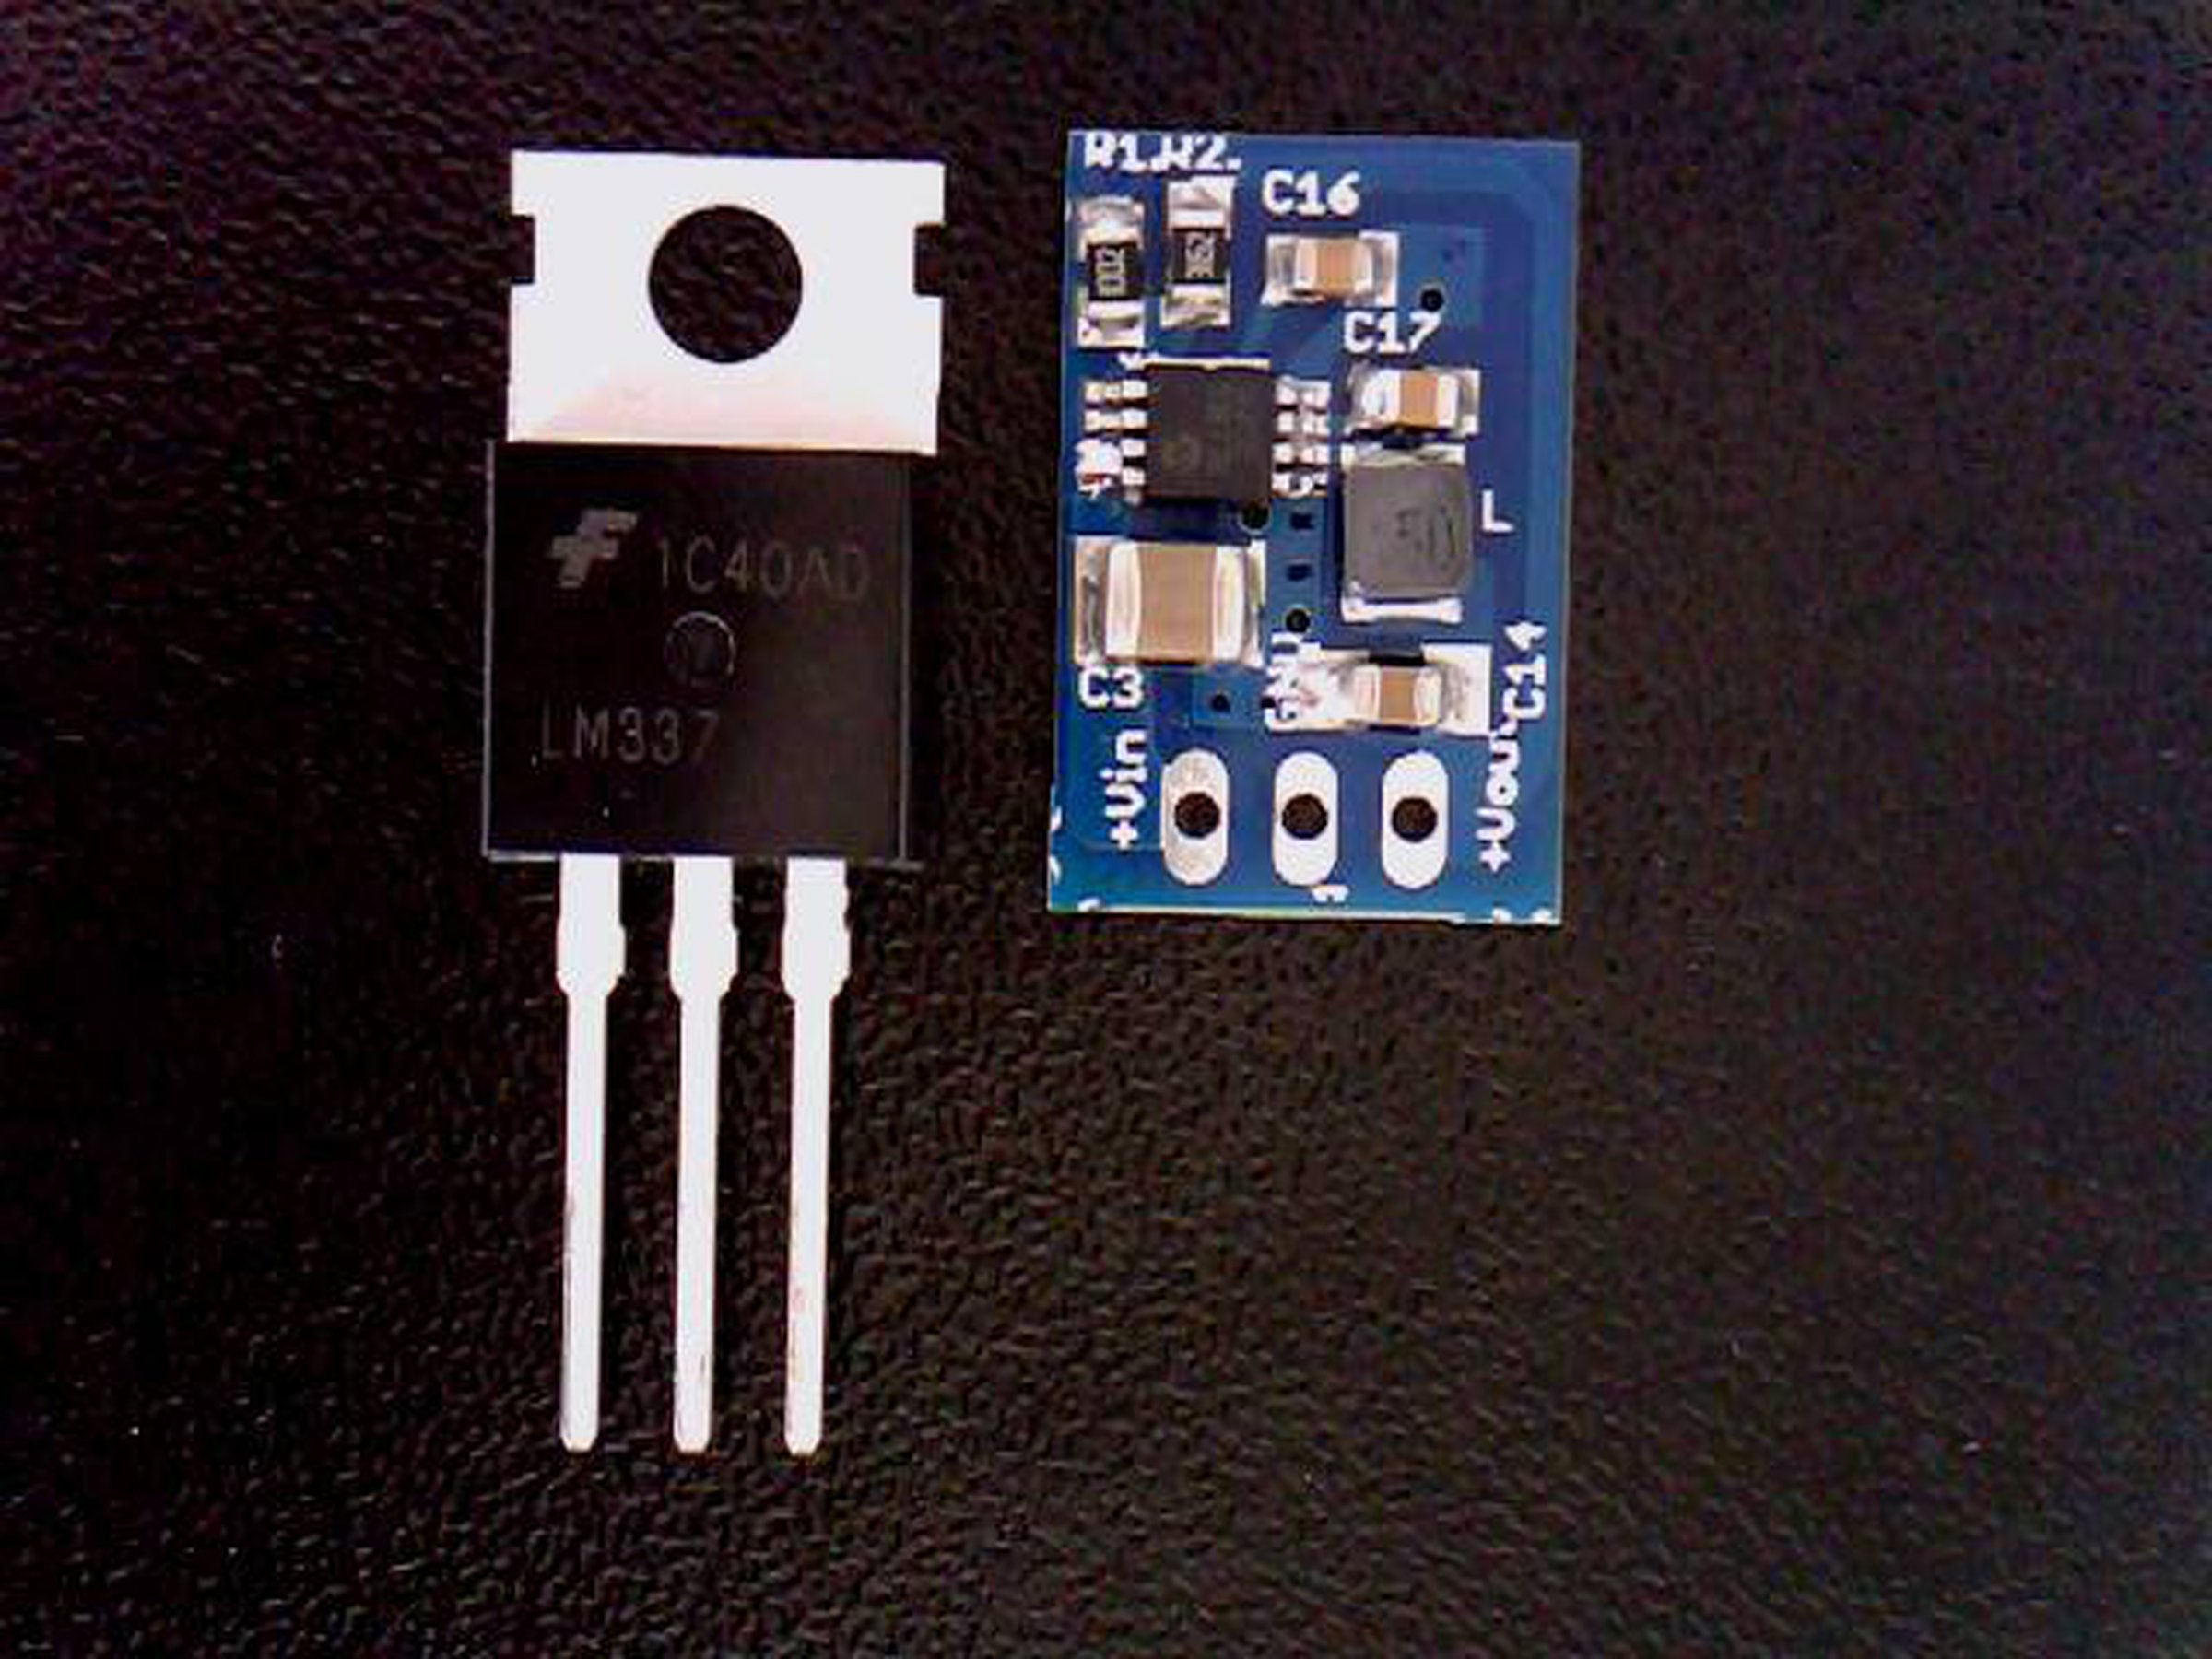 30v Synchronous Step Down Dc Converter From Nextevo On Tindie Usb Battery Replacement By Lm317 1